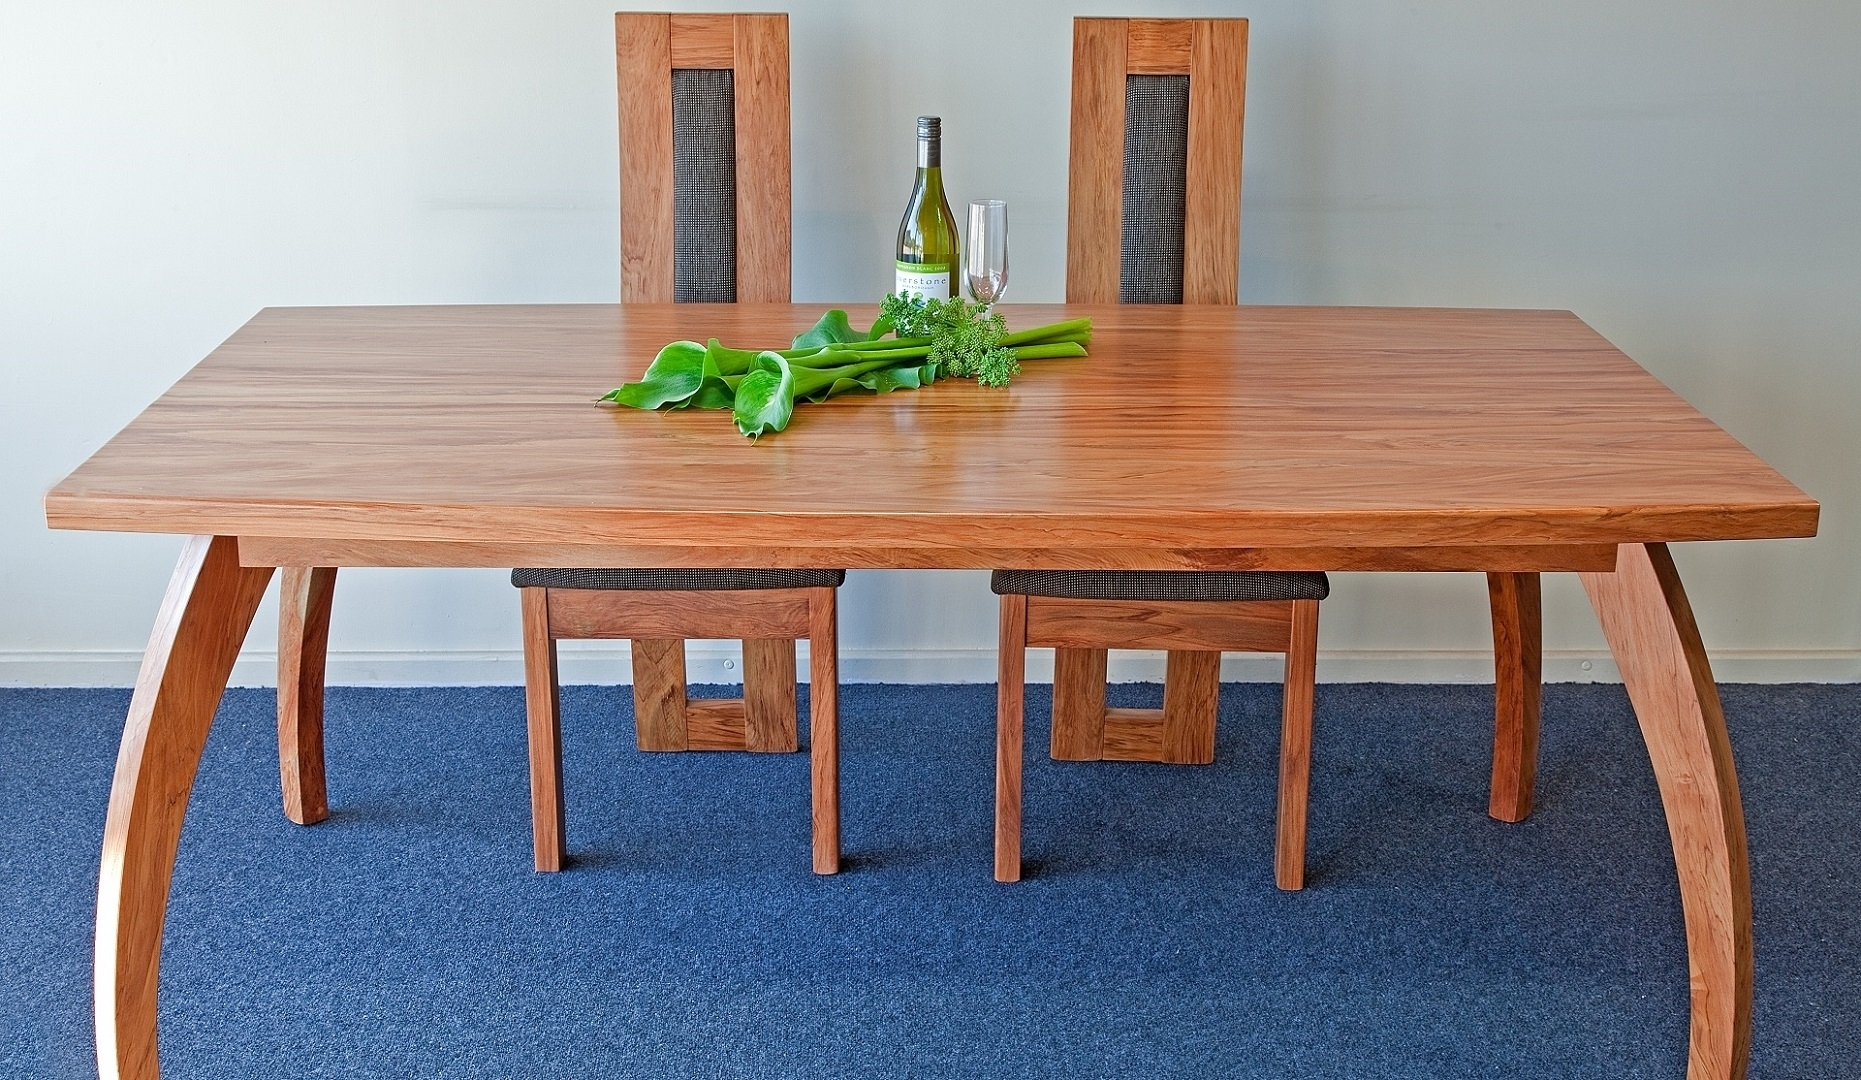 Gavin Cox Furniture | Solid Timber Furniture. Pertaining To Most Current Gavin Dining Tables (Photo 20 of 20)